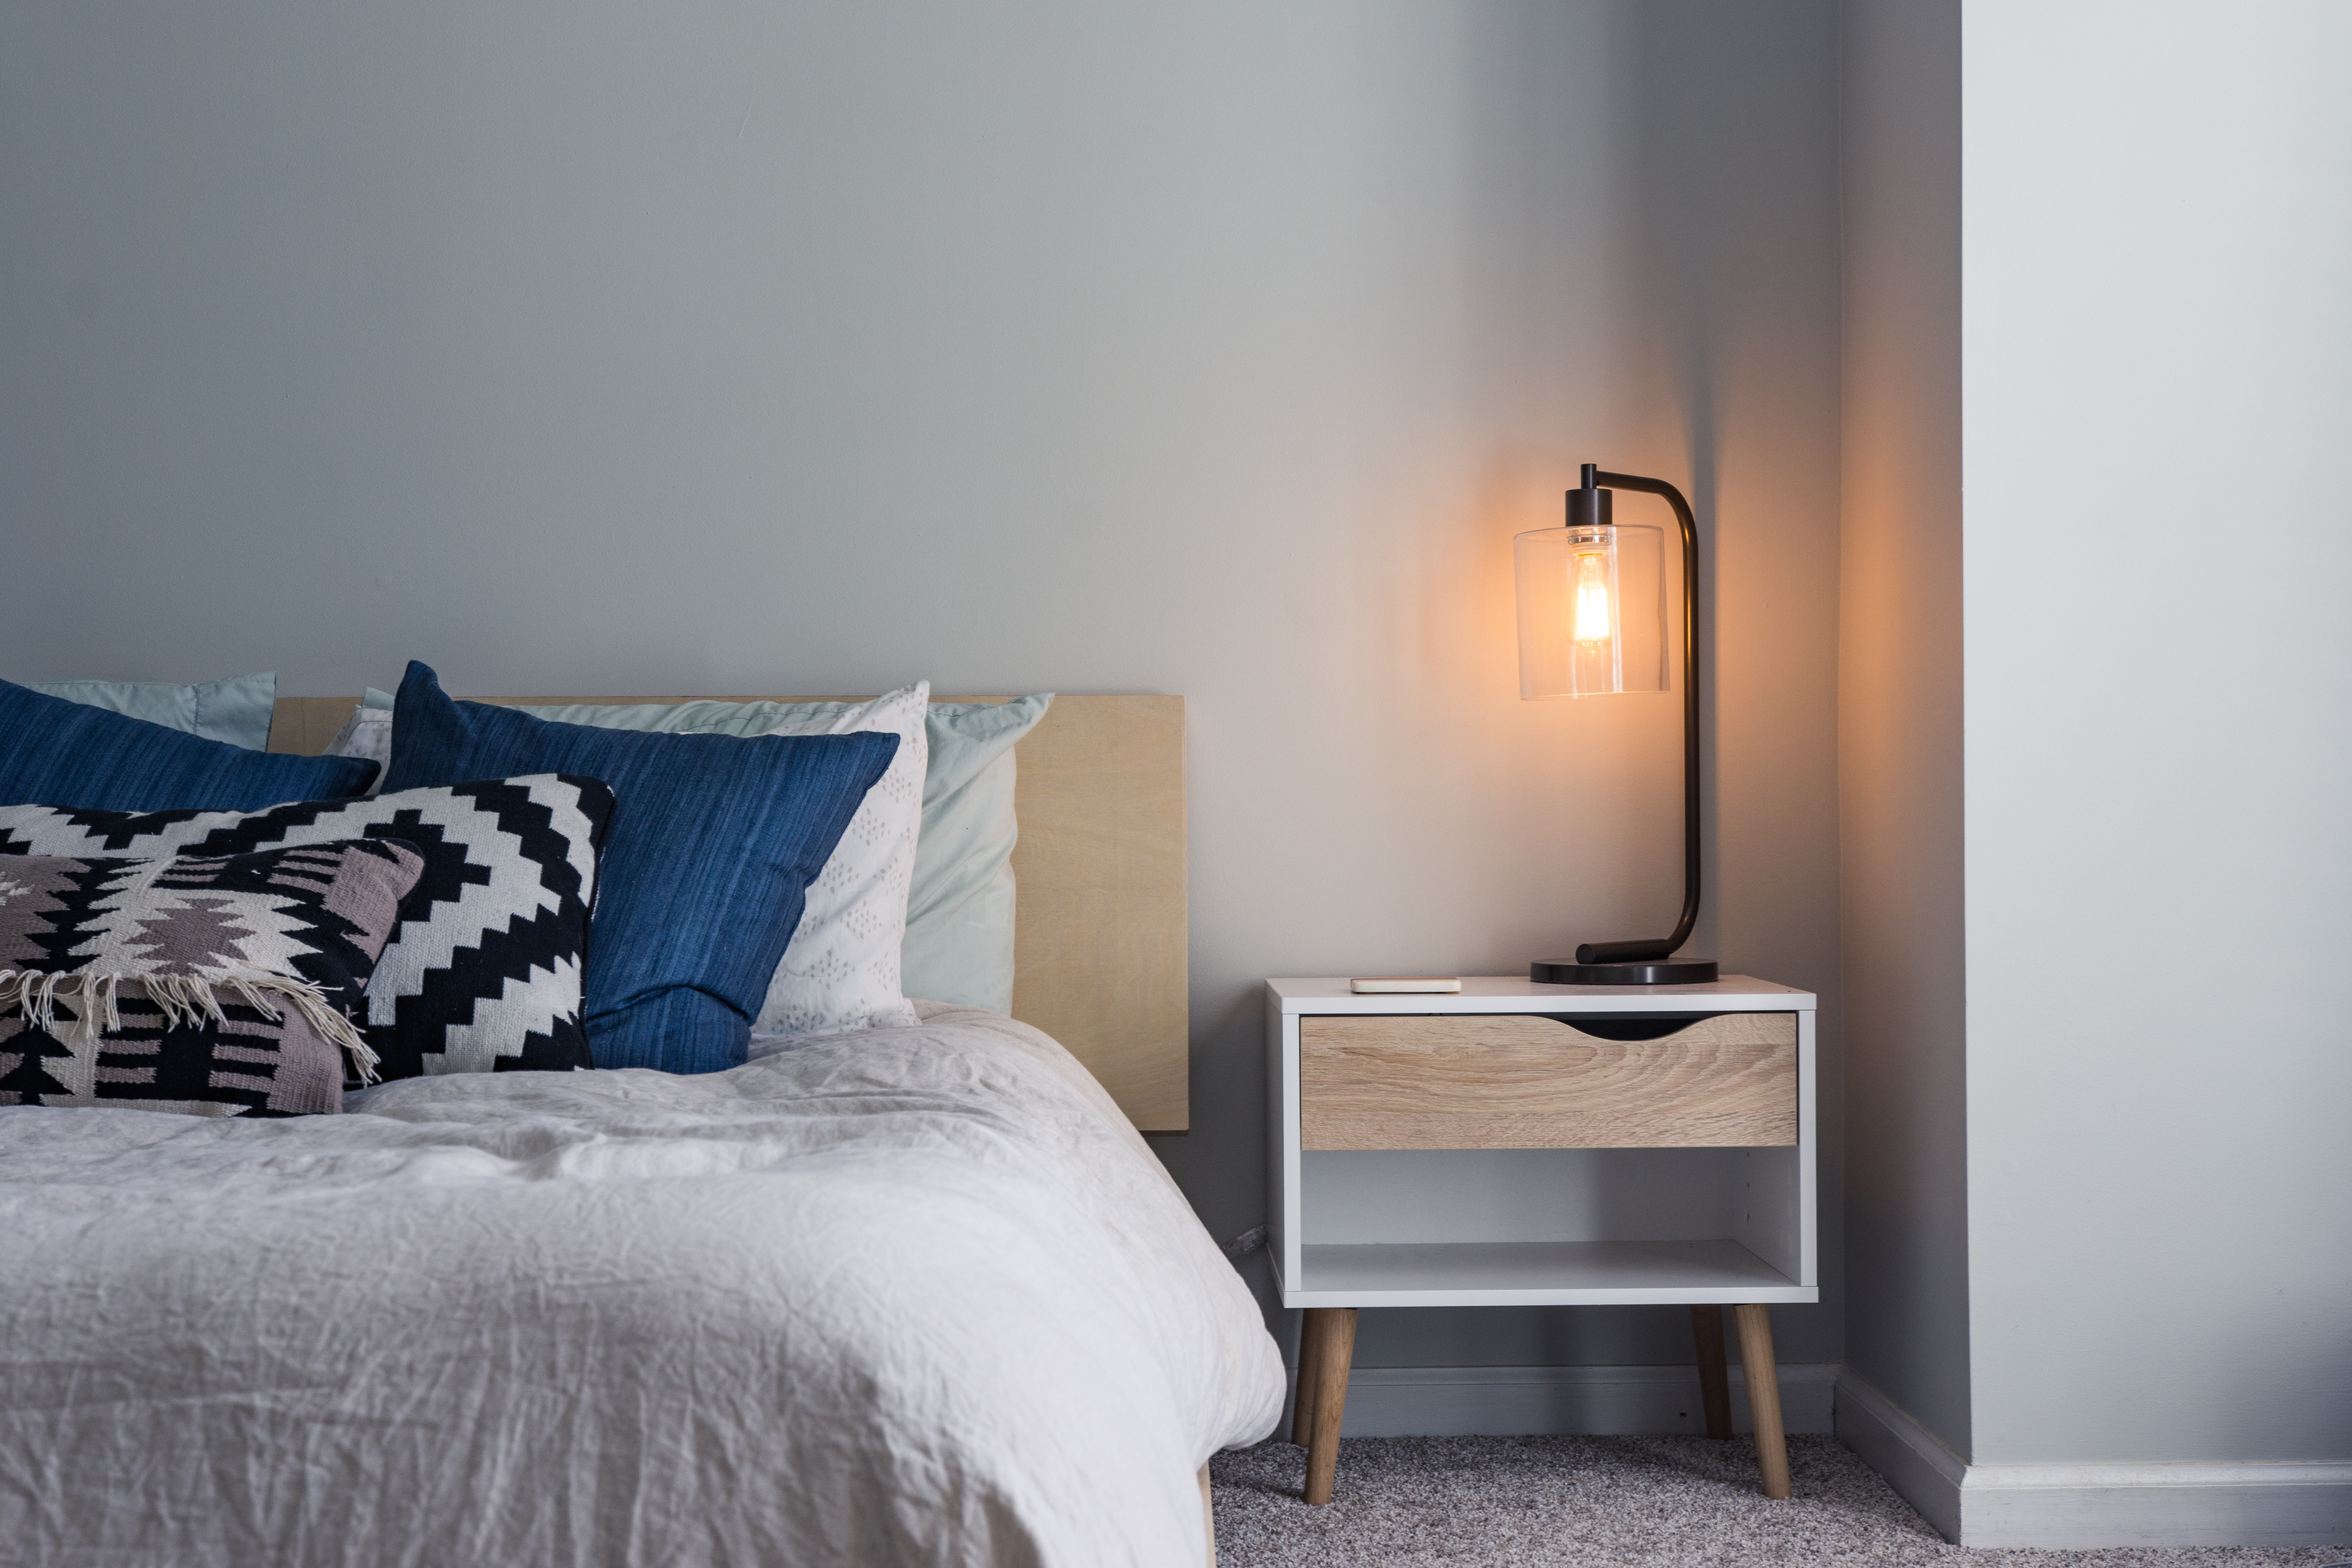 How To Make Your Room Feel Even More Cozy